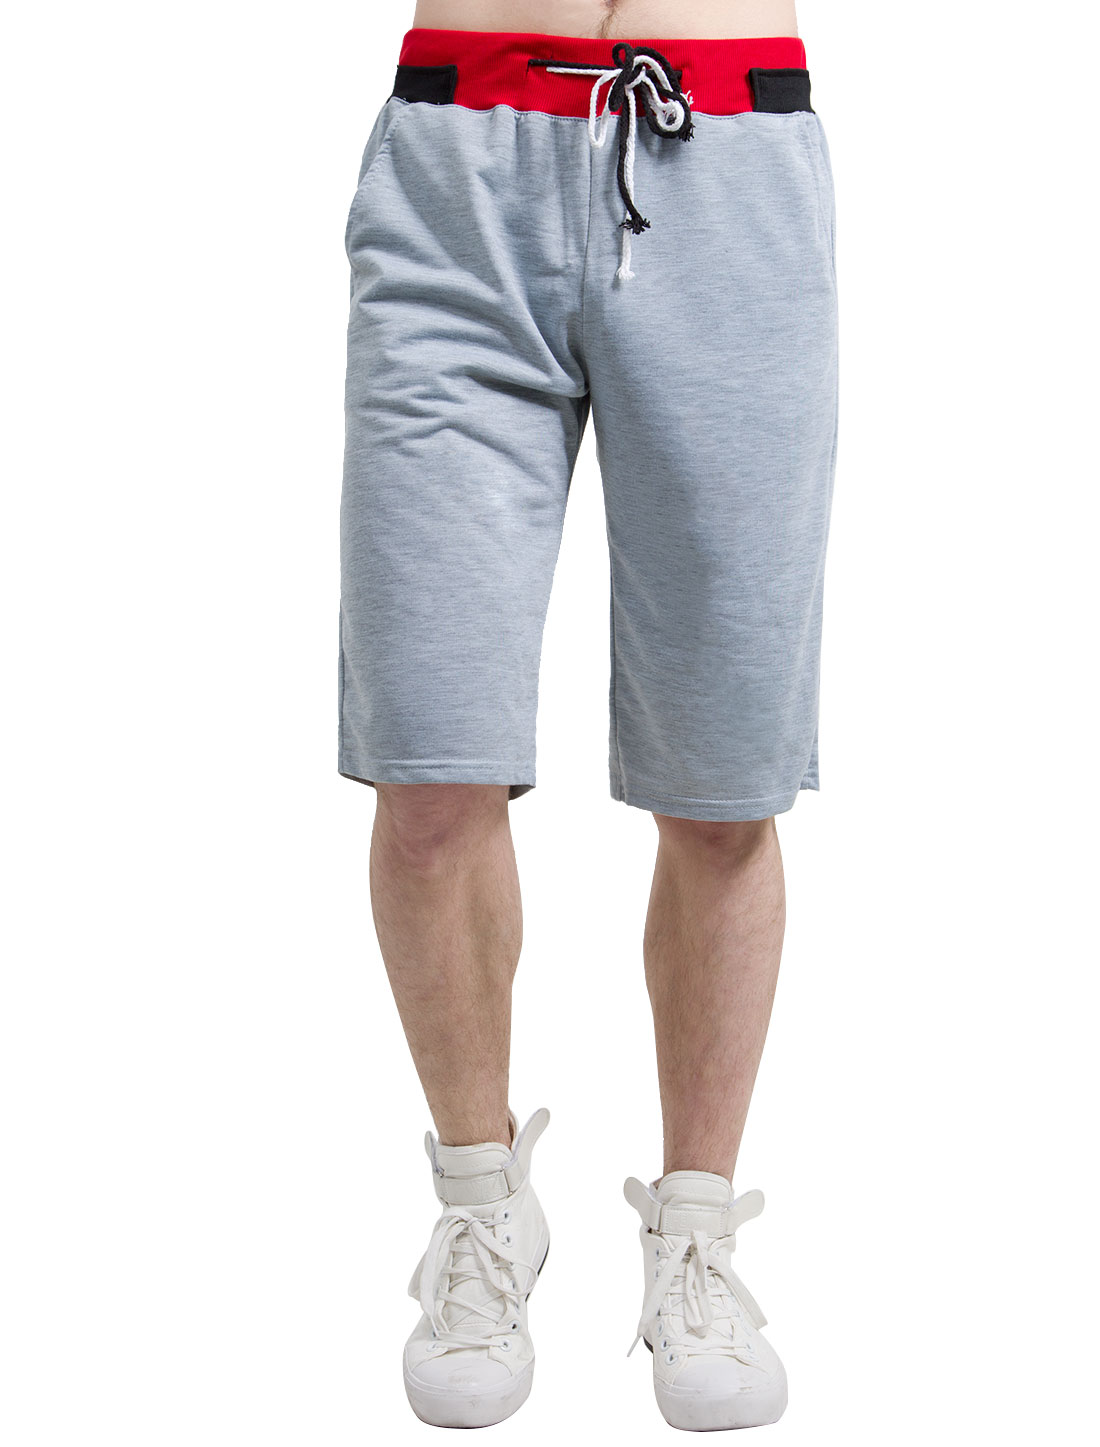 Men Stretch Waistband Color Block Shorts Light Gray W34